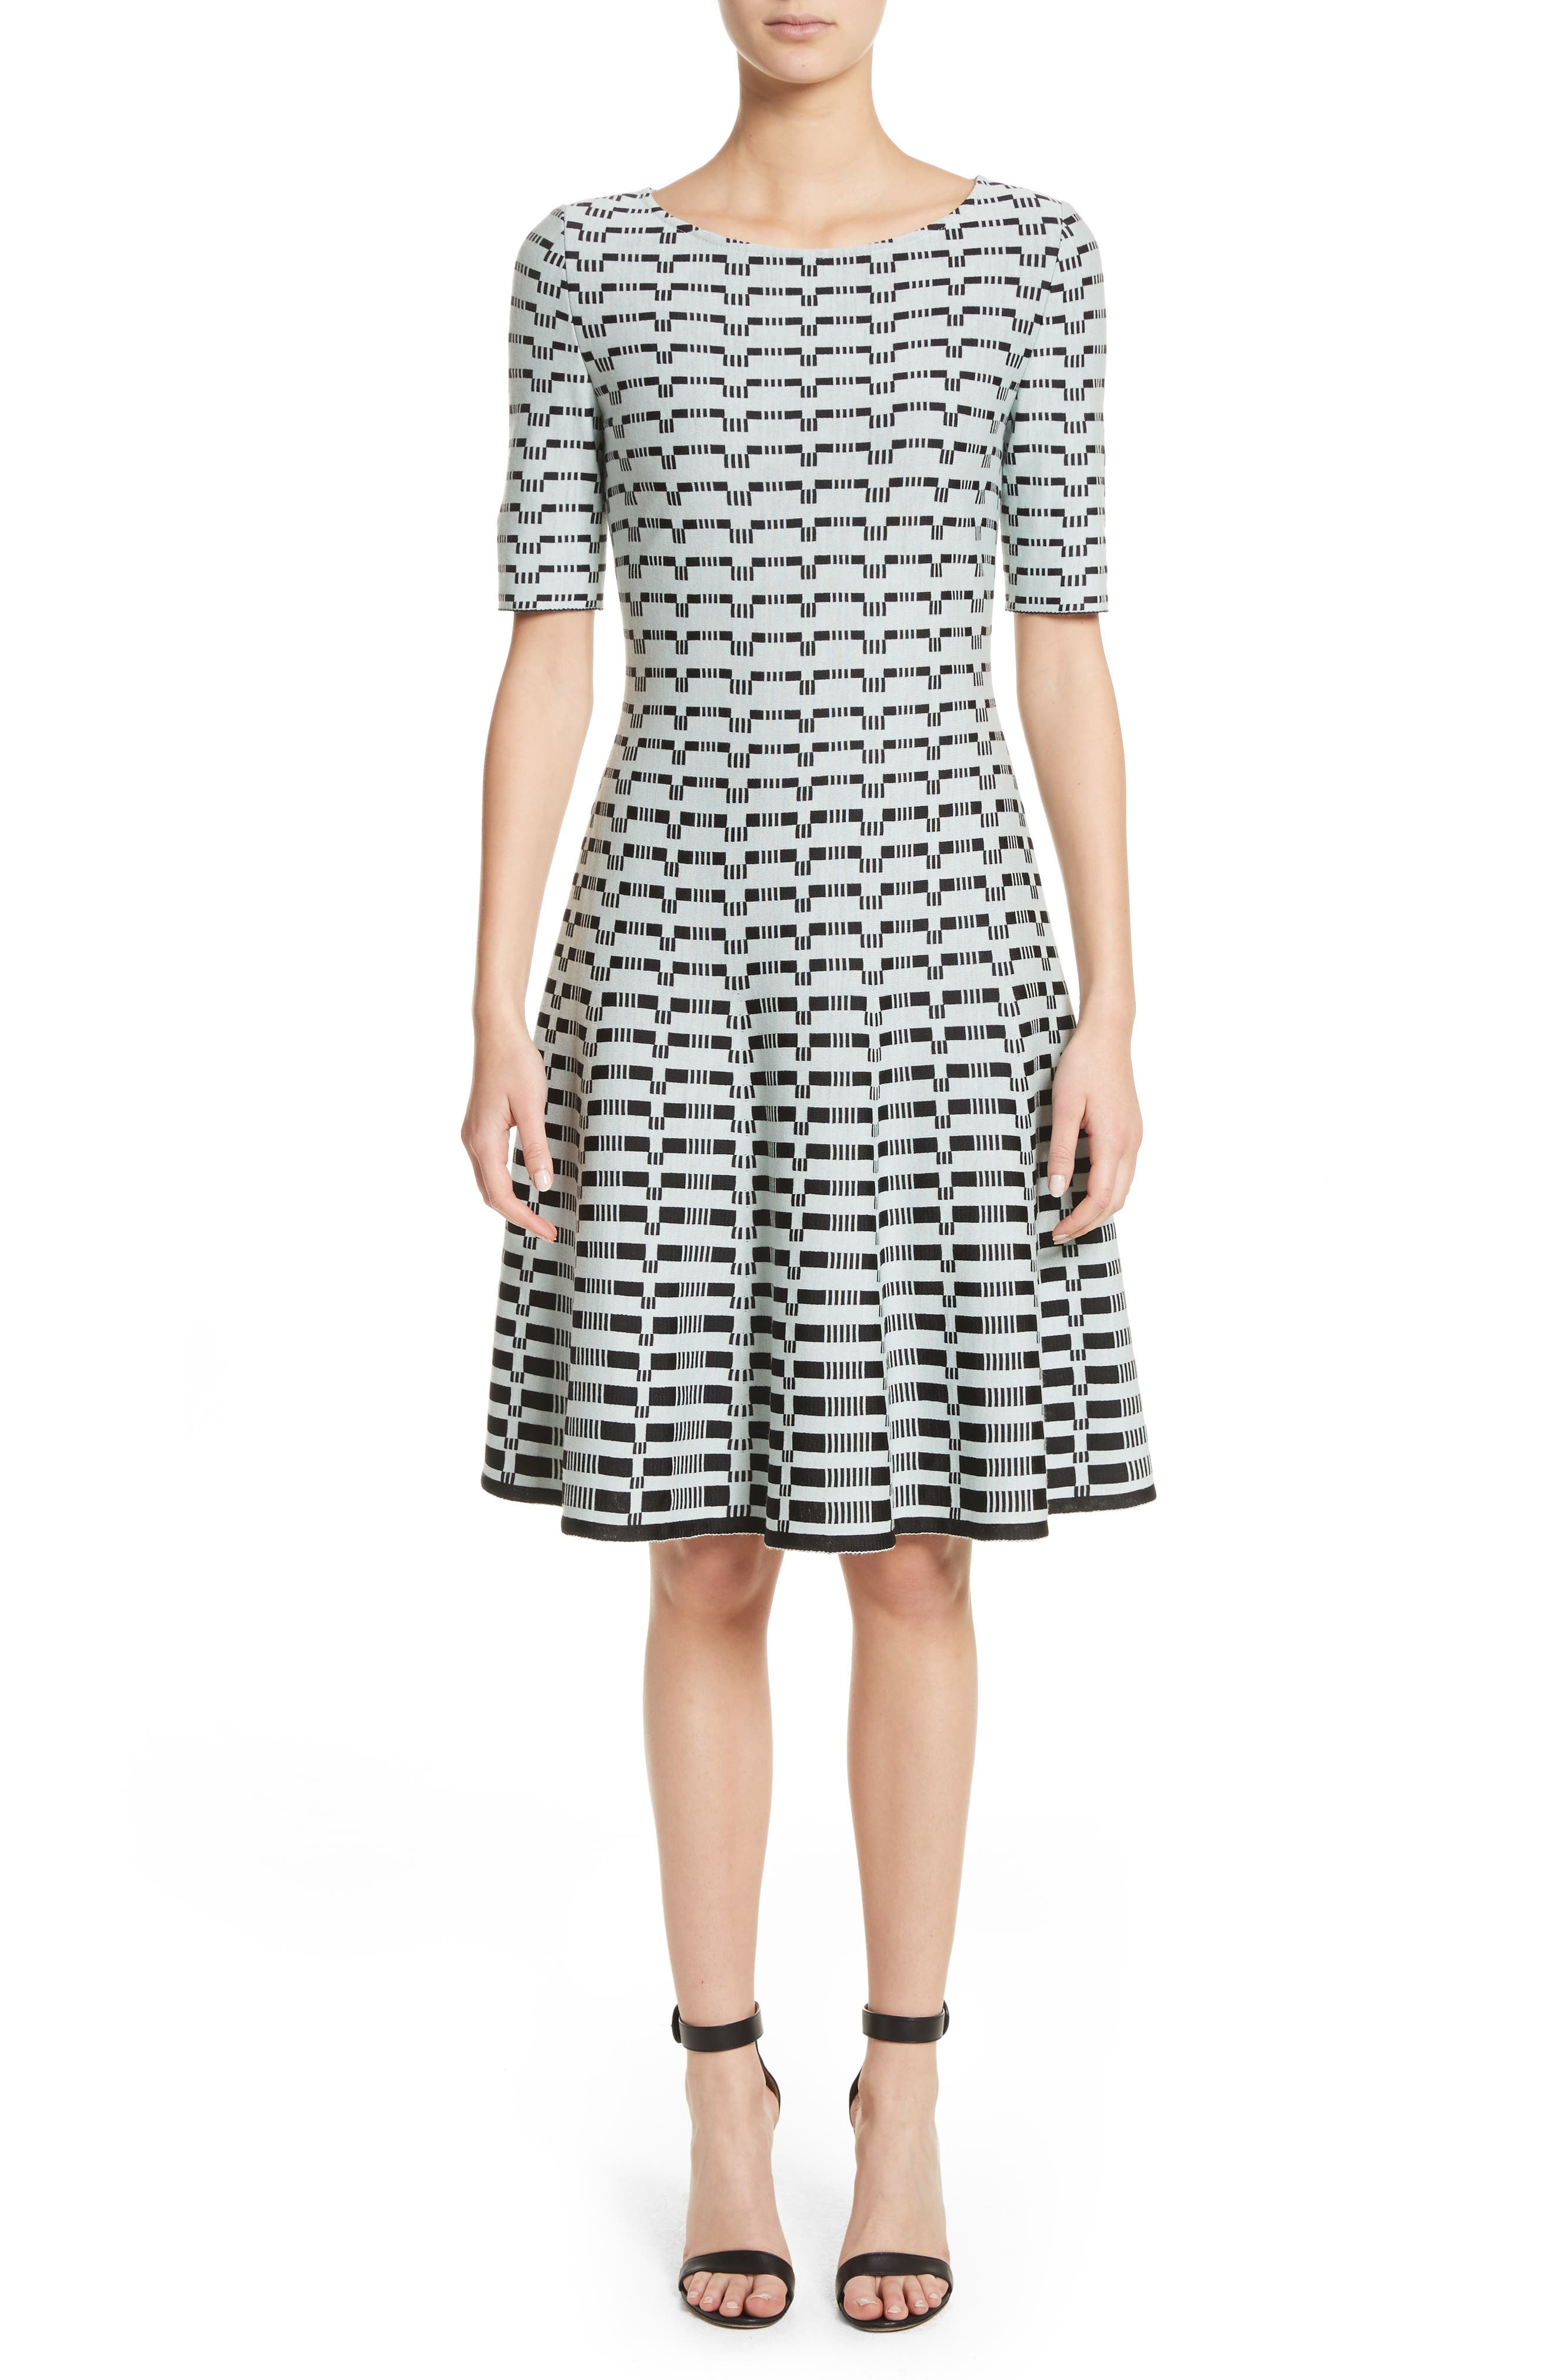 Alternate Image 1 Selected - St. John Collection Grid Knit Fit & Flare Dress